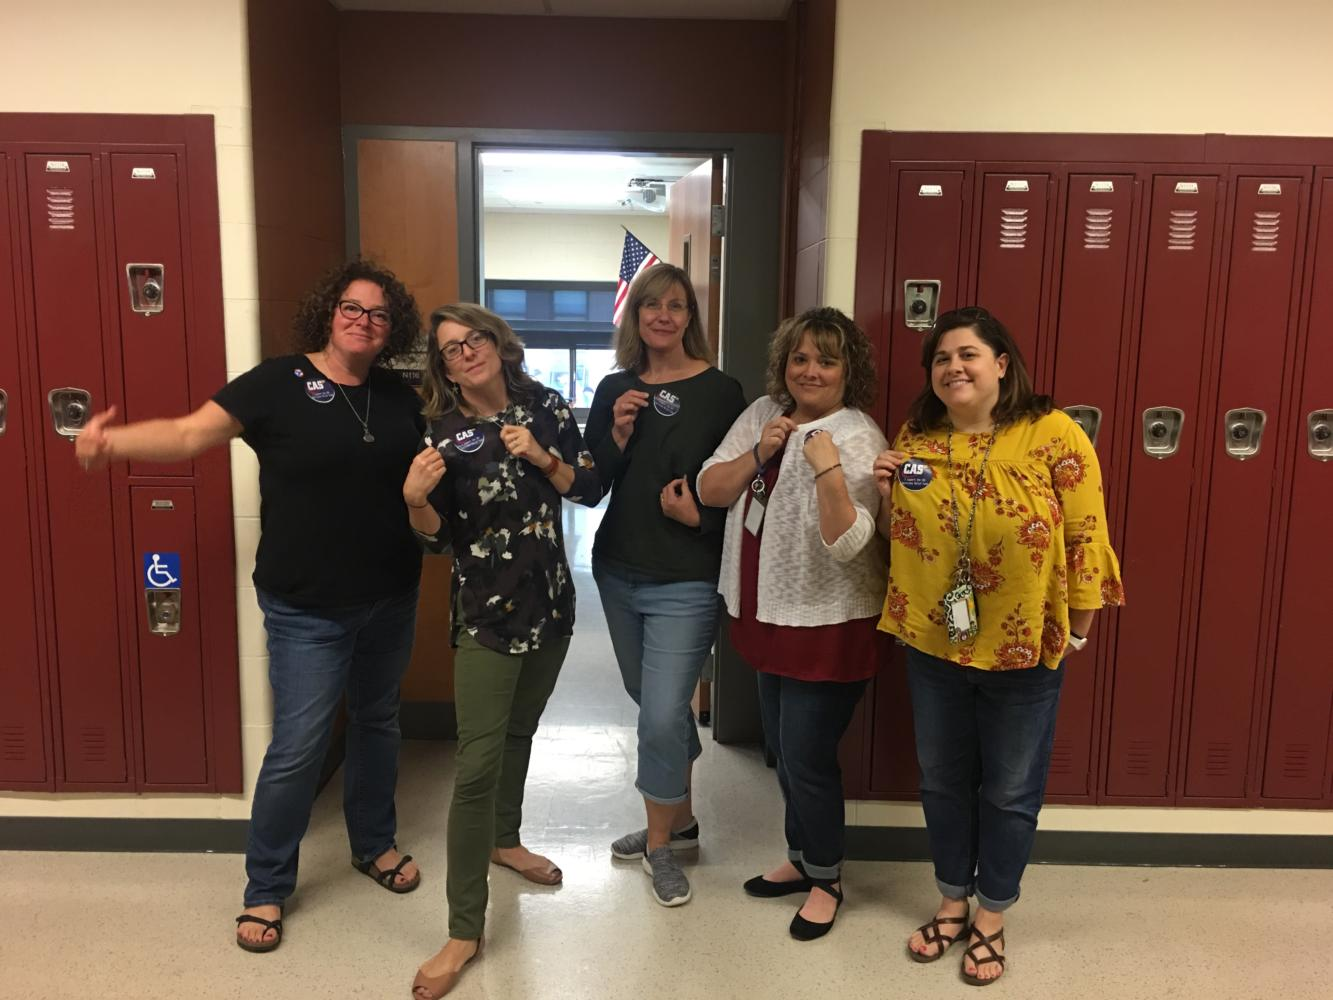 Mrs. Brennan, in charge of the hurricane fundraiser, poses with dressed down English teachers Mrs. Walsh, Ms. Norcross, Mrs. Dymond and Mrs. Dunn